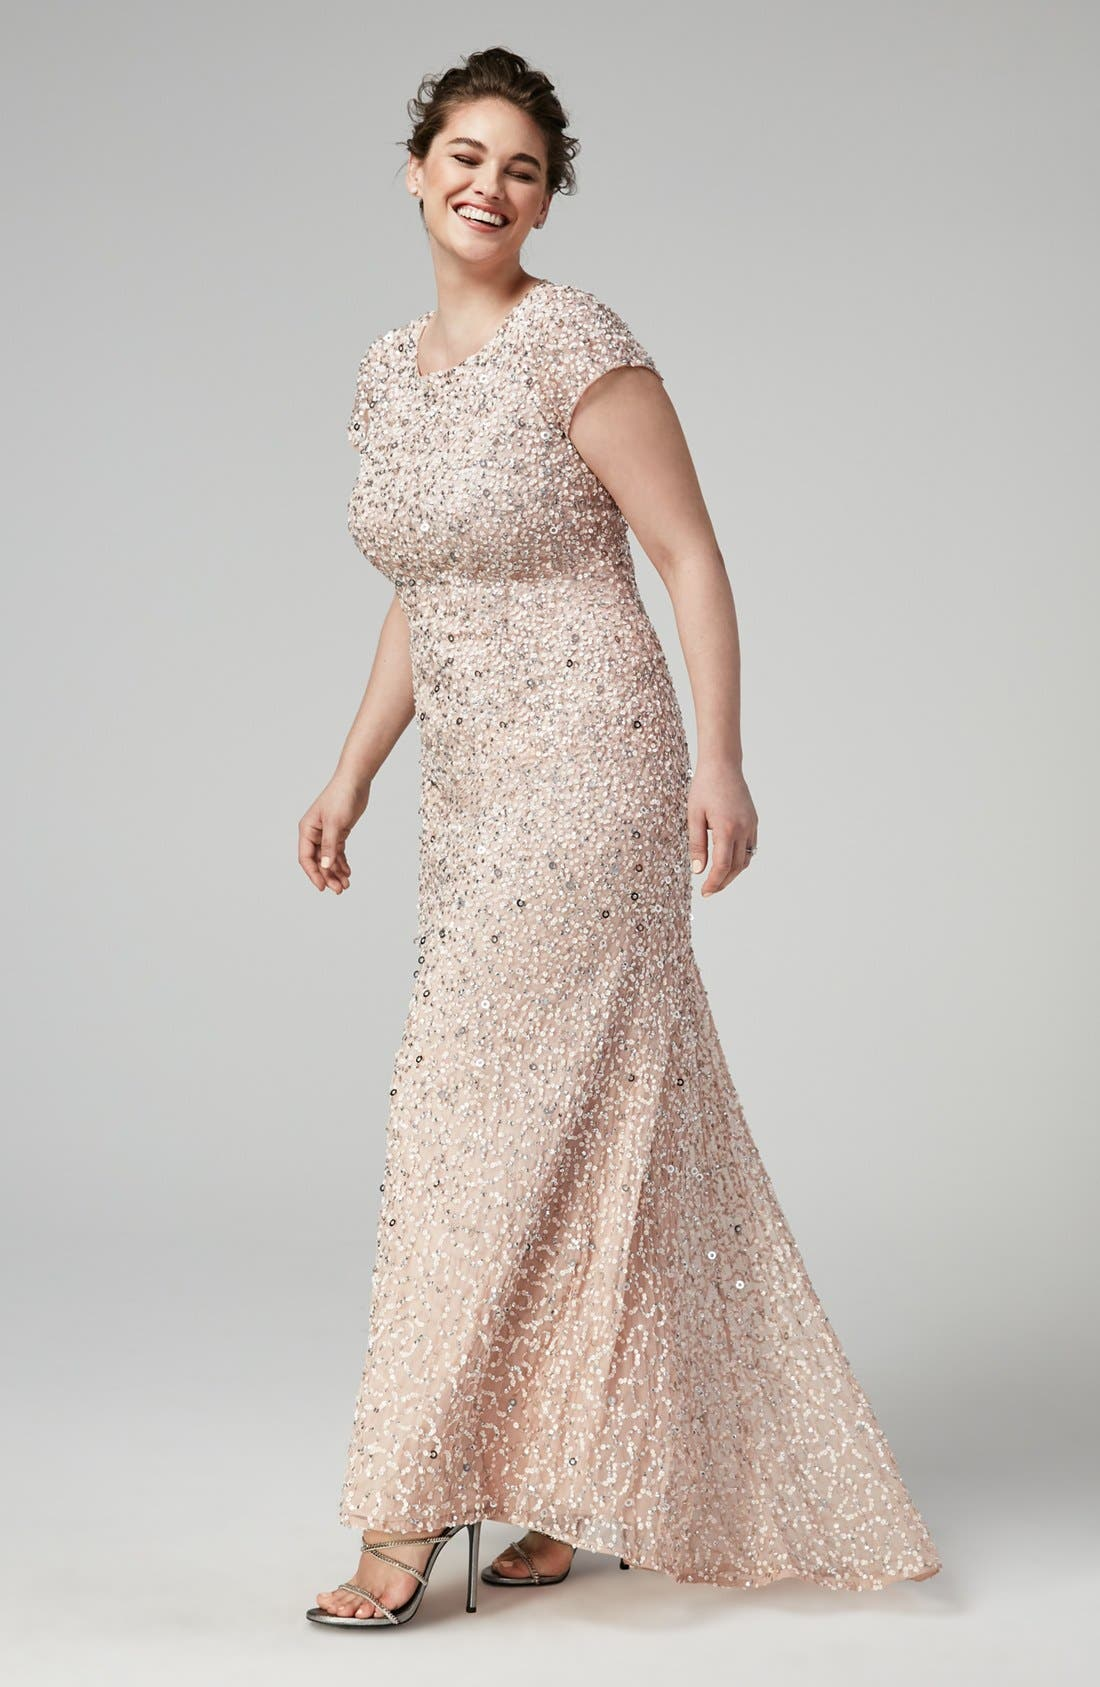 Adrianna Papell Gown & Accessories (Plus Size)